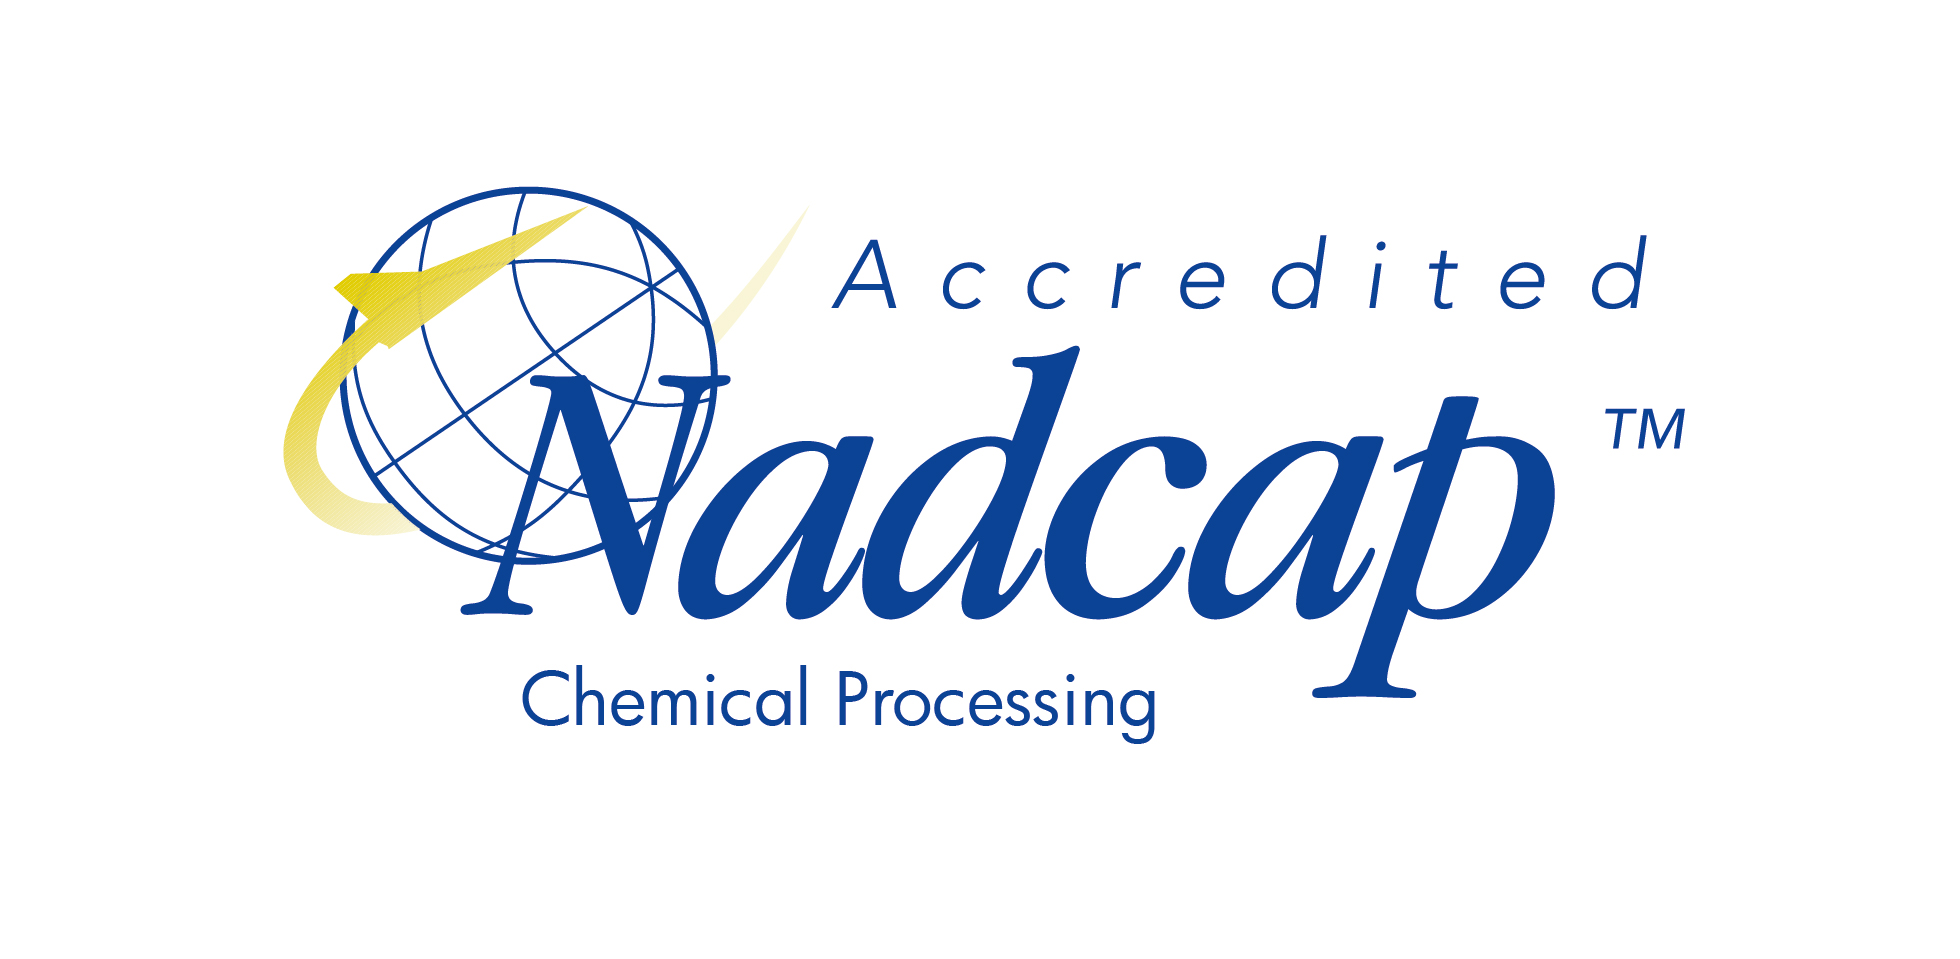 LOGO NADCAP « CHEMICAL PROCESSING »